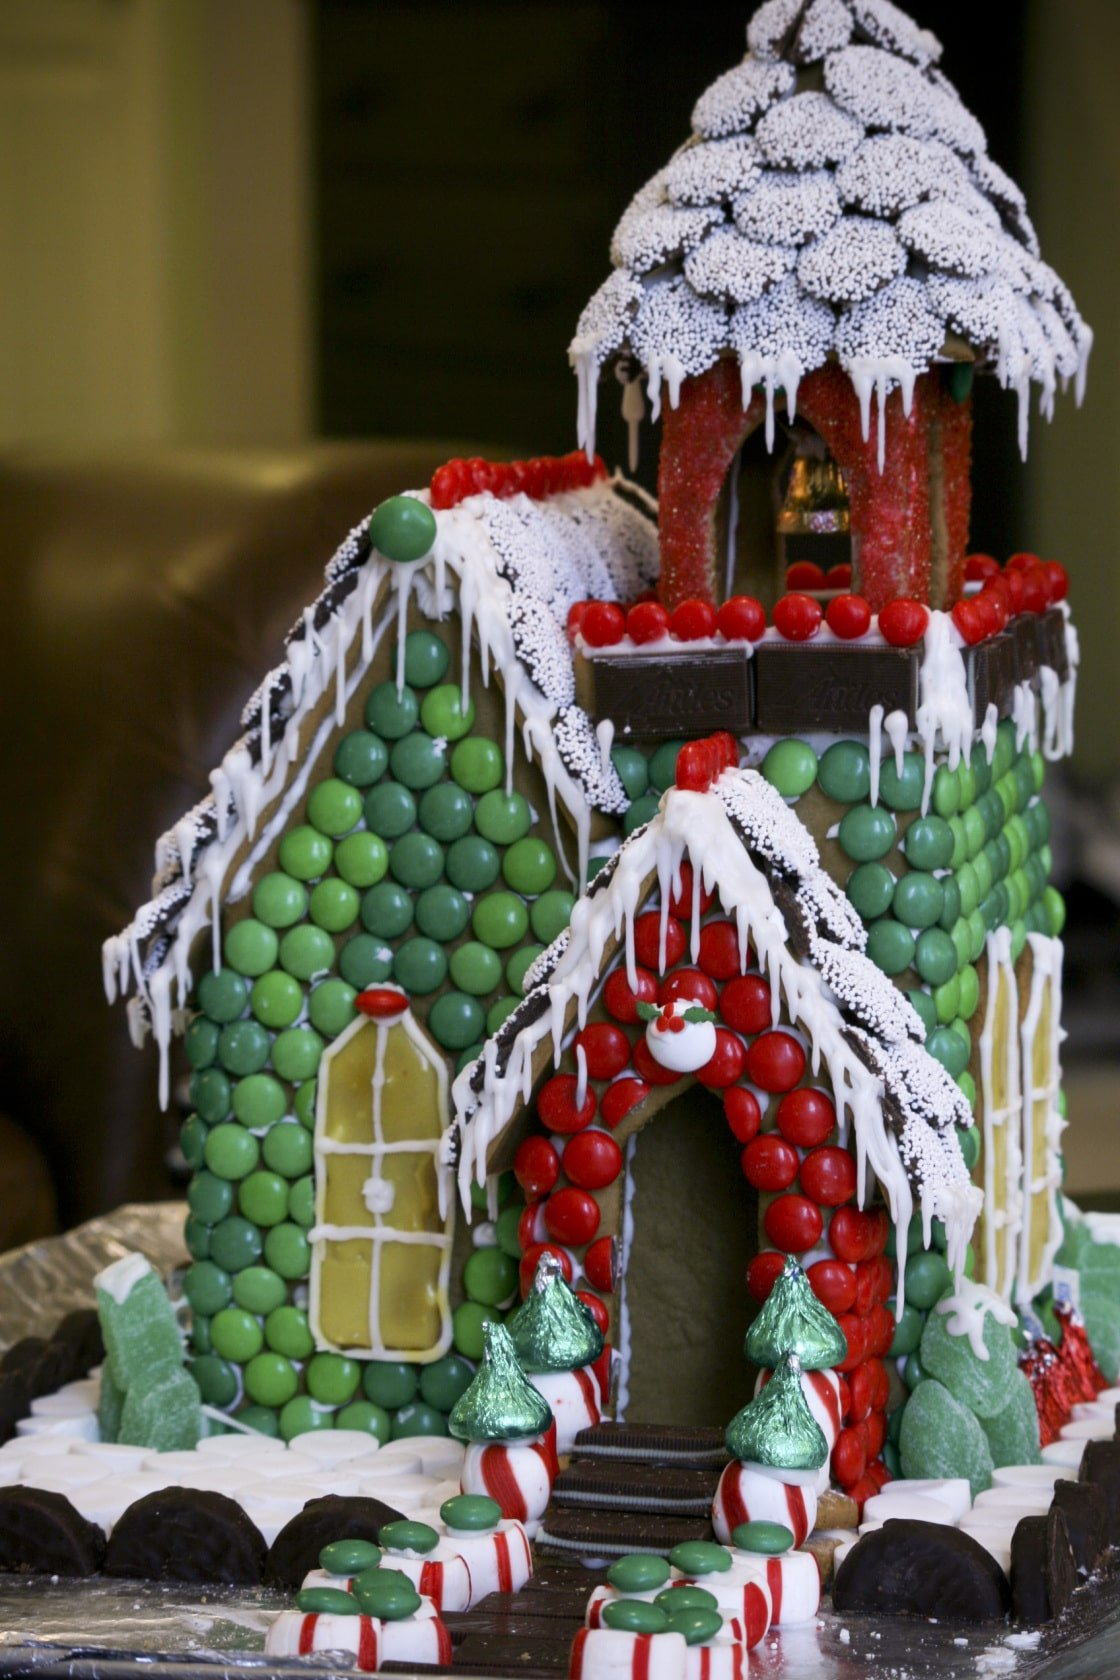 Beautiful Gingerbread Houses!